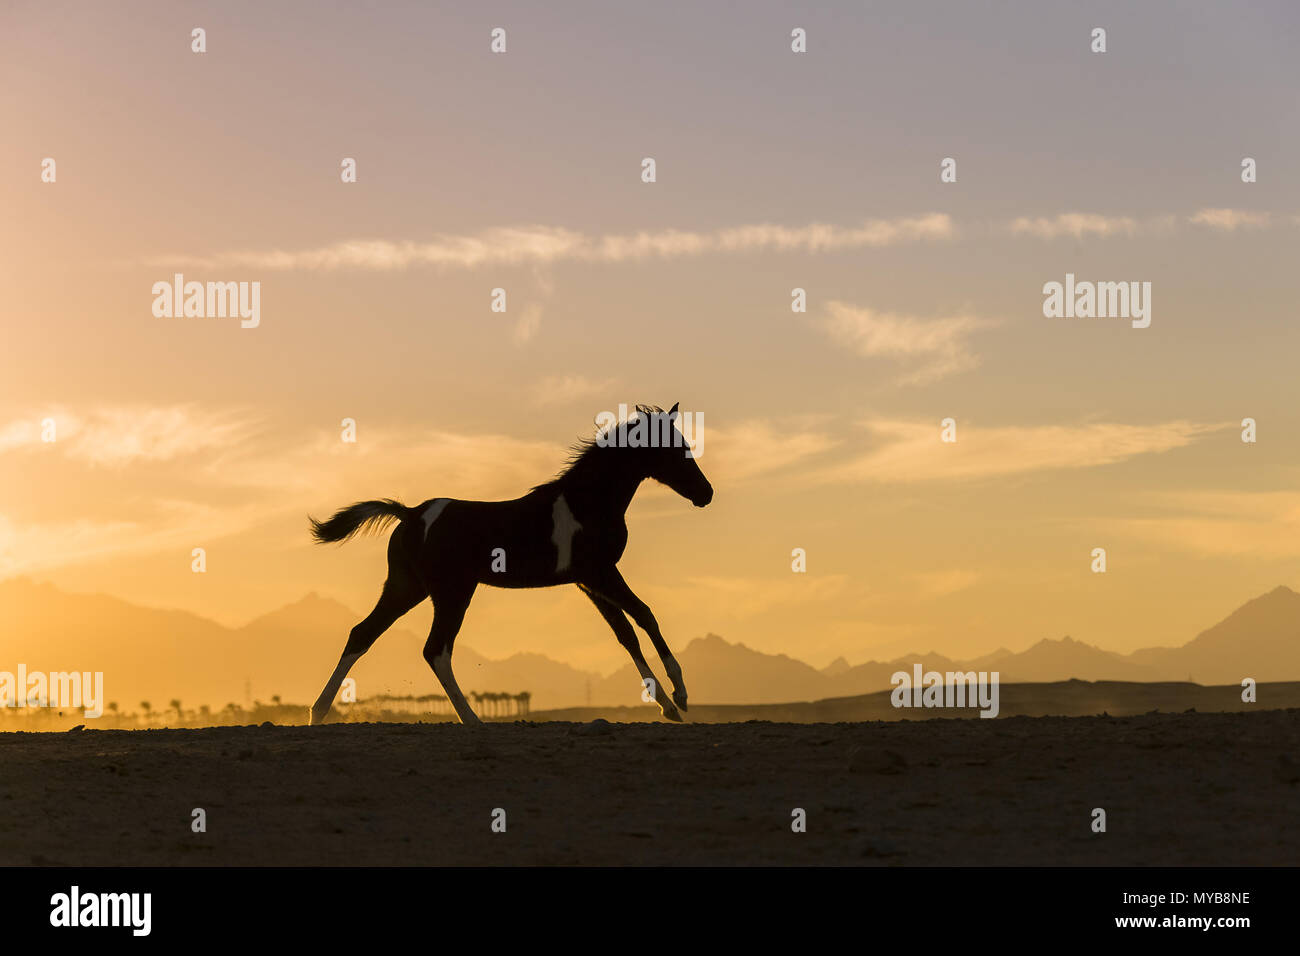 Pinto Paint Horse Filly Foal At Sunset Galloping In The Desert Egypt Stock Photo Alamy